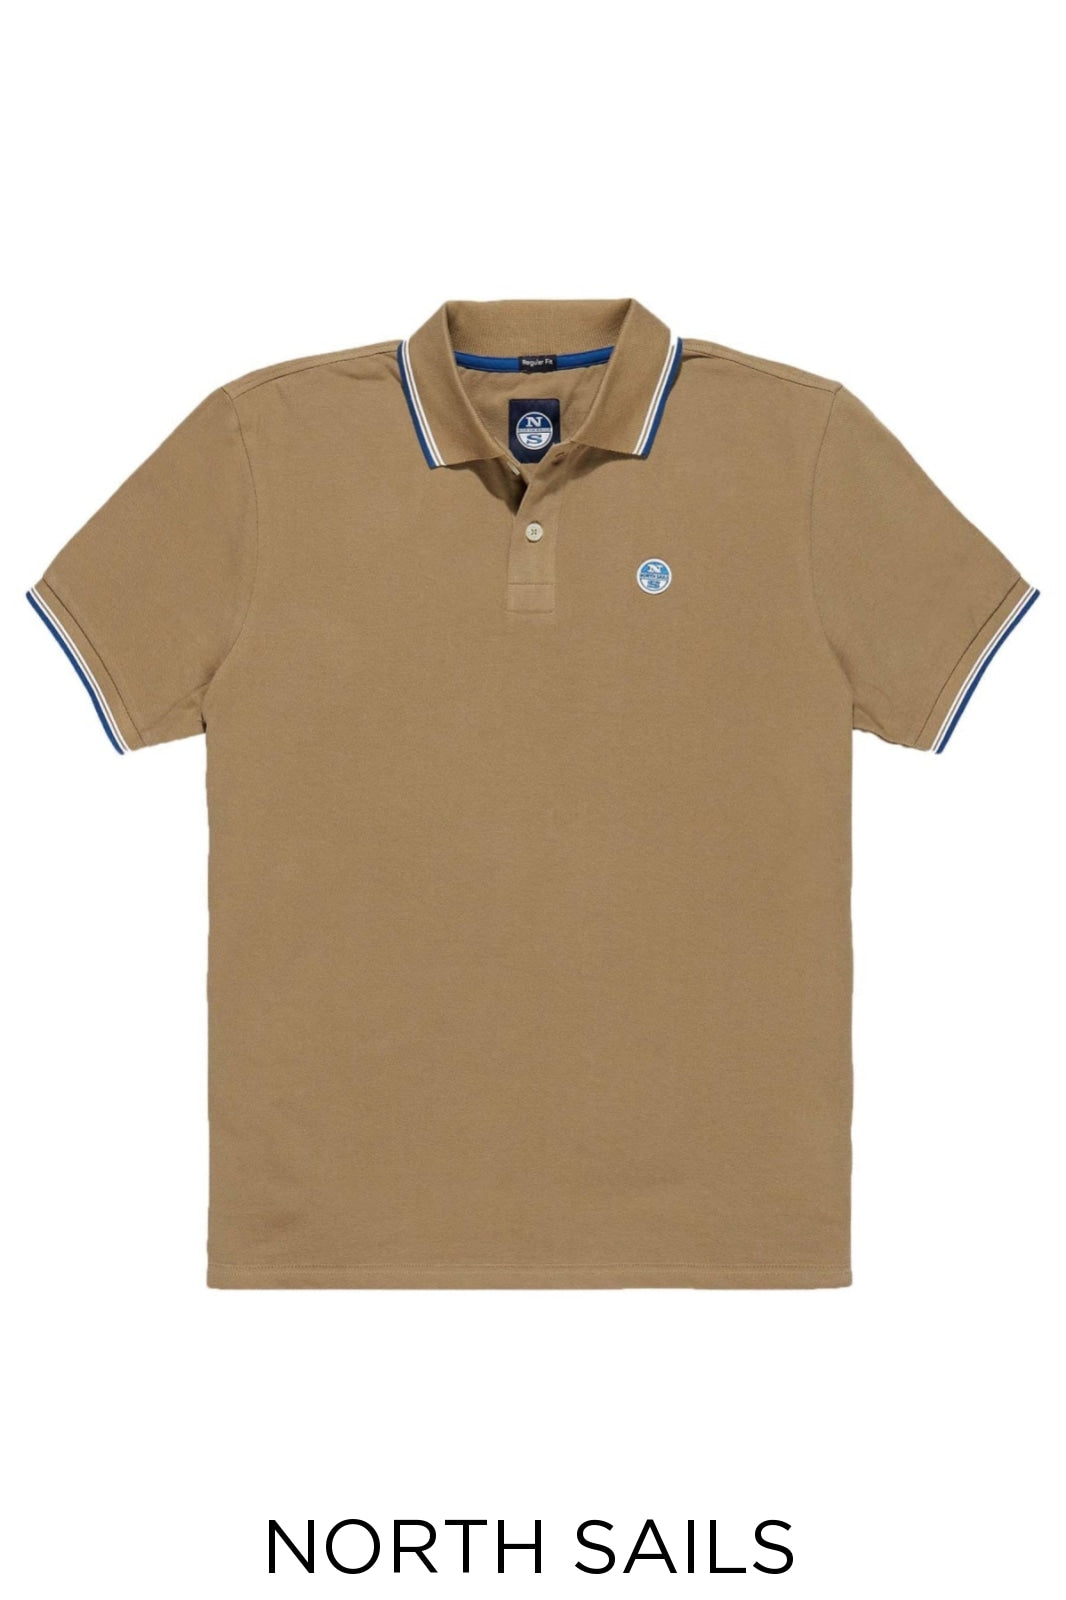 North Sails North Sails Cotton Pique Polo Shirt | S / Orange / Legacy Secret Label